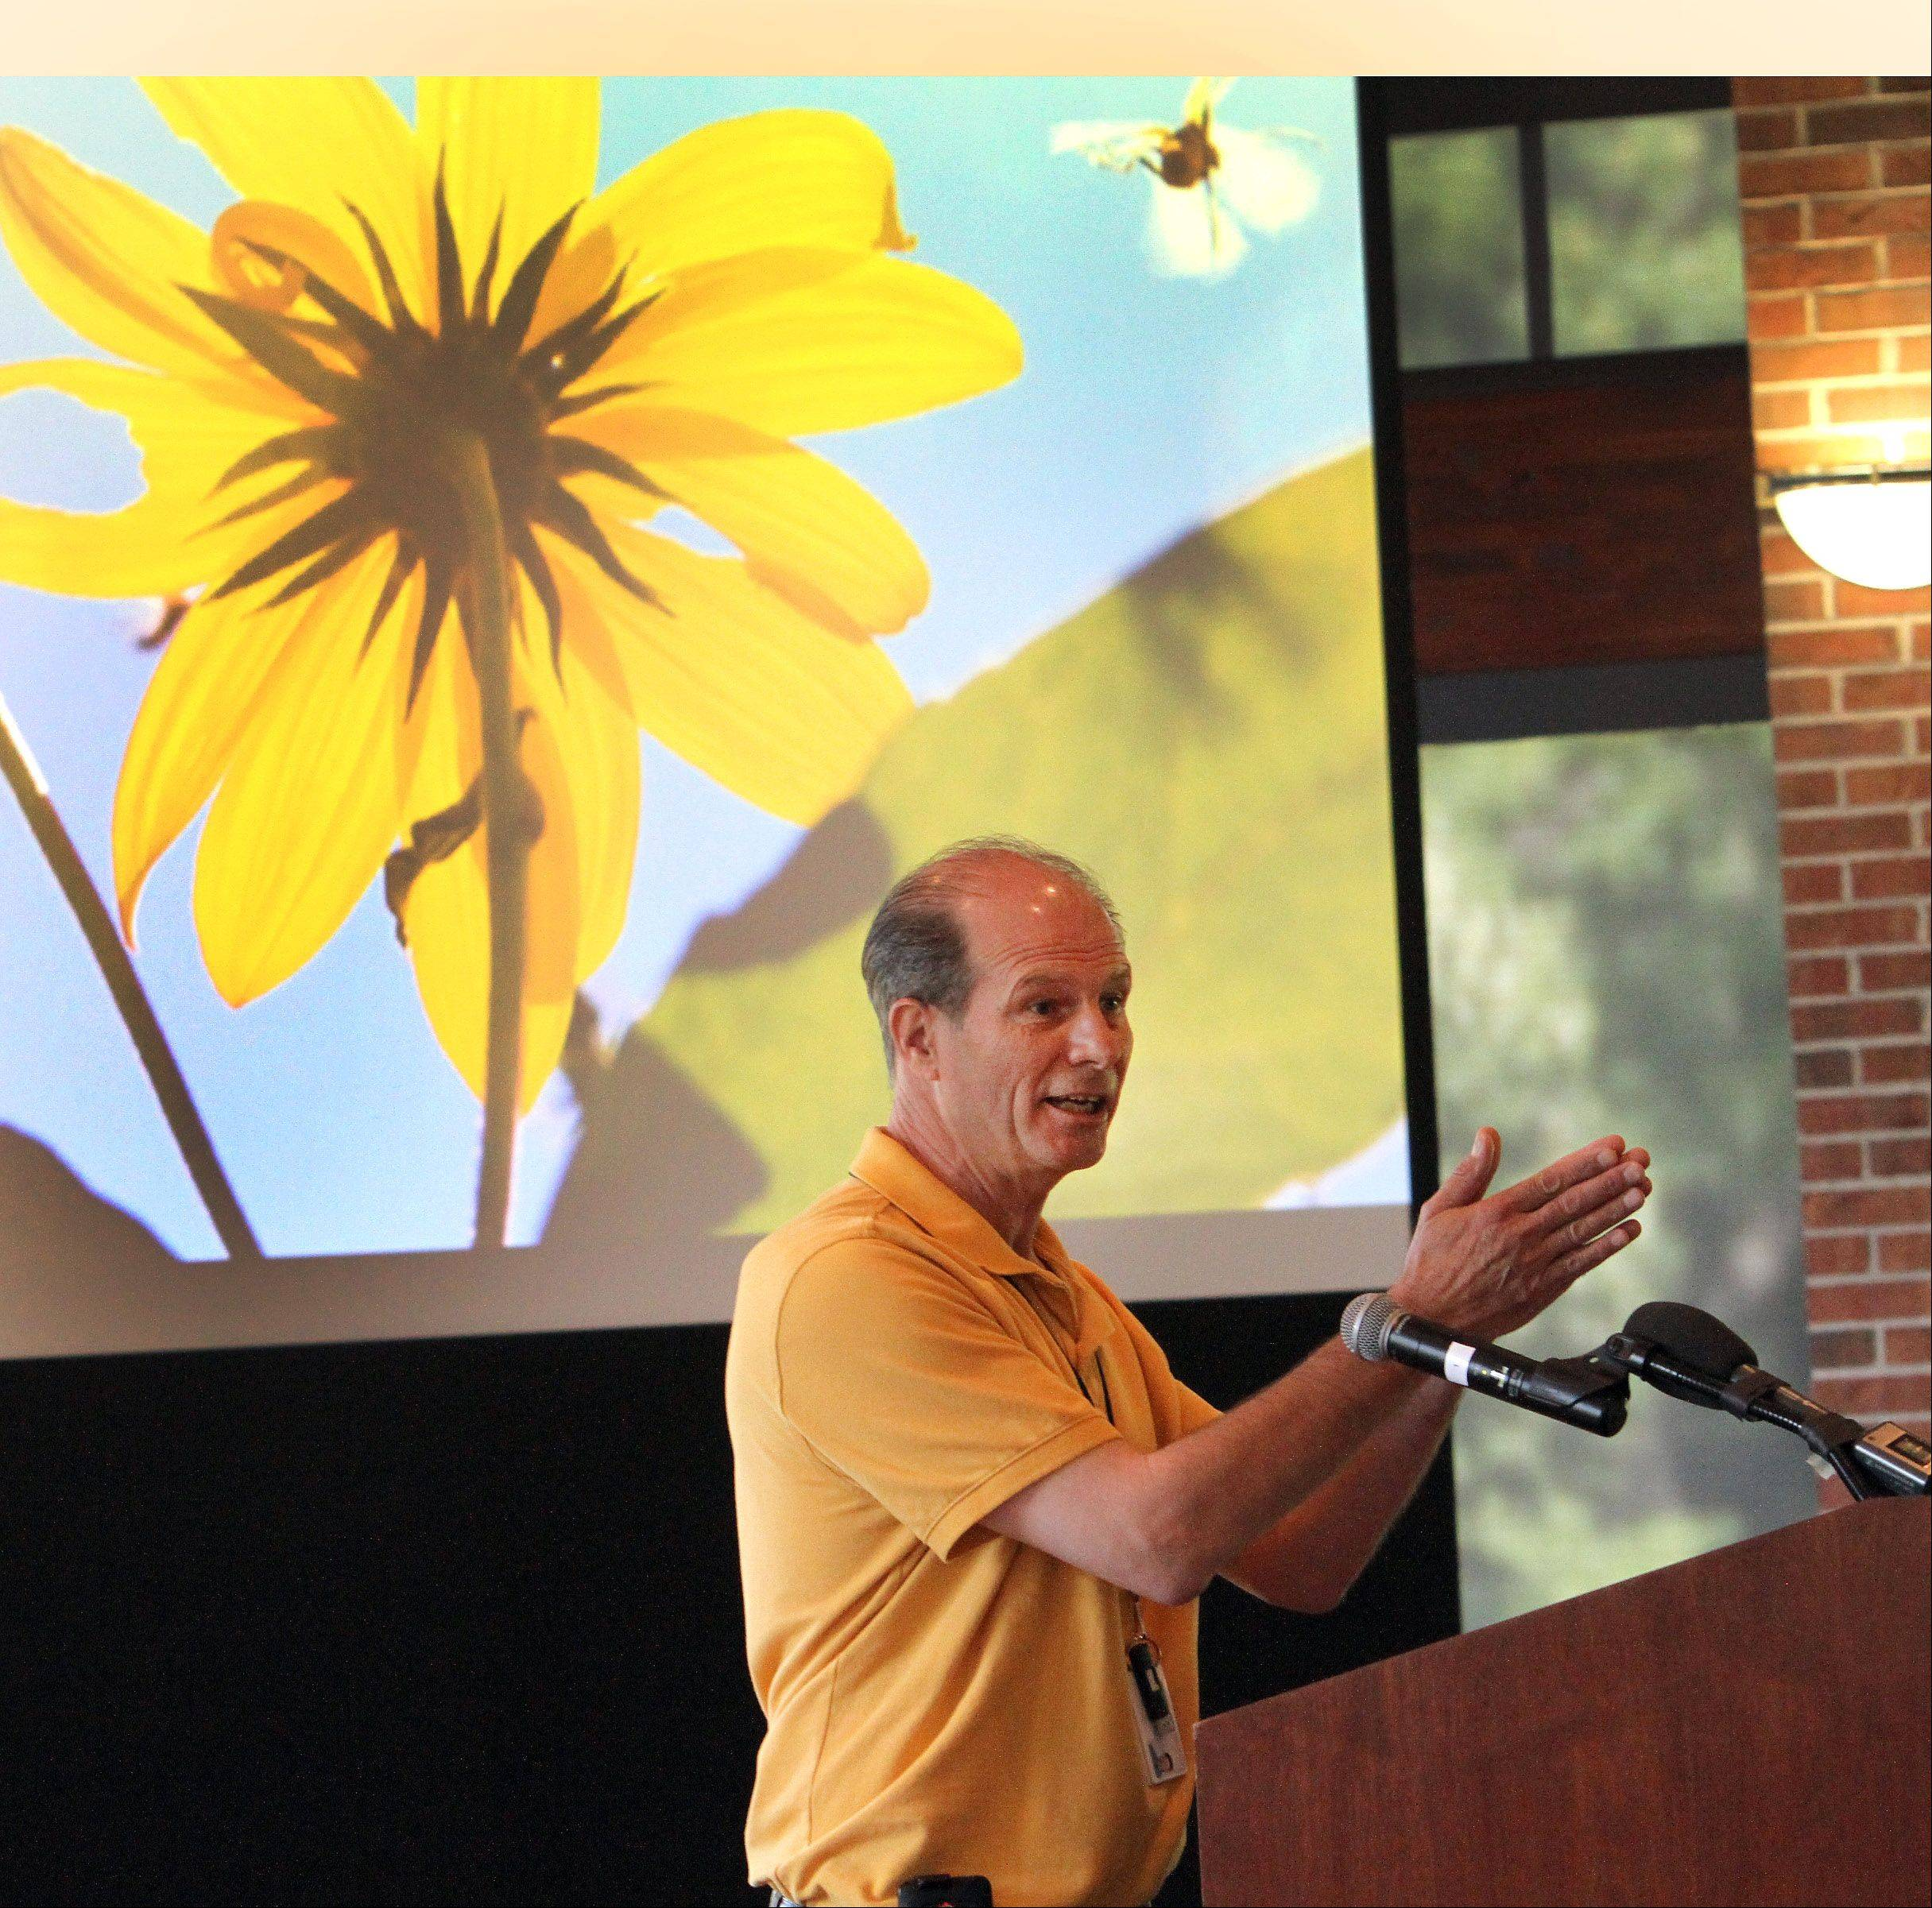 Daily Herald photographer George LeClaire speaks about shooting the environment during a Daily Herald Subscriber Total Access photo workshop Thursday at Cantigny Park in Wheaton. The event drew nearly 100 participants.